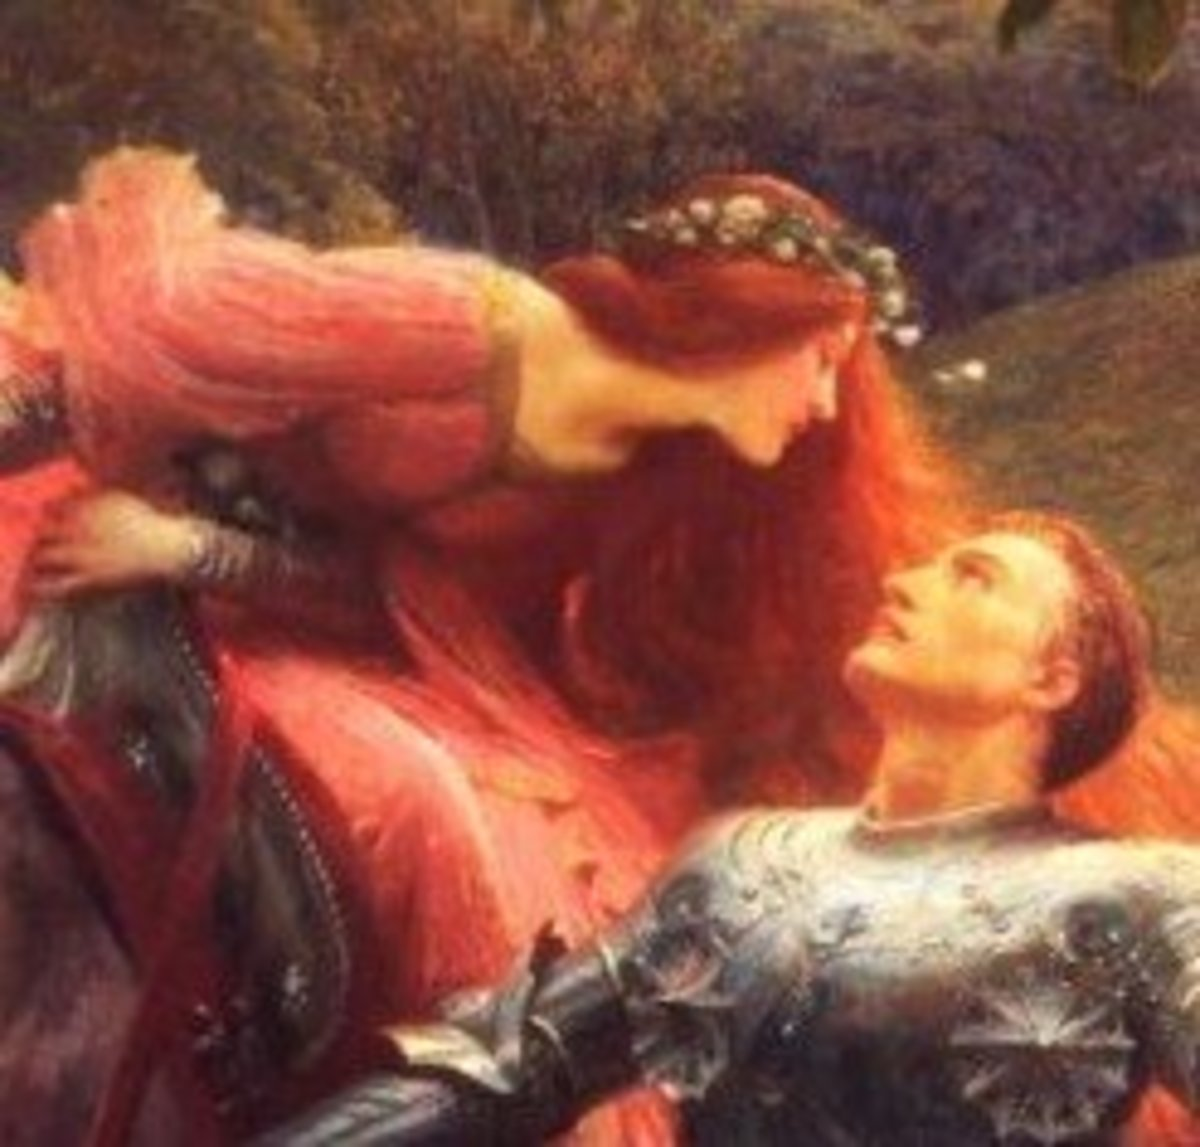 redheads-myths--legends--and-famous-red-hair